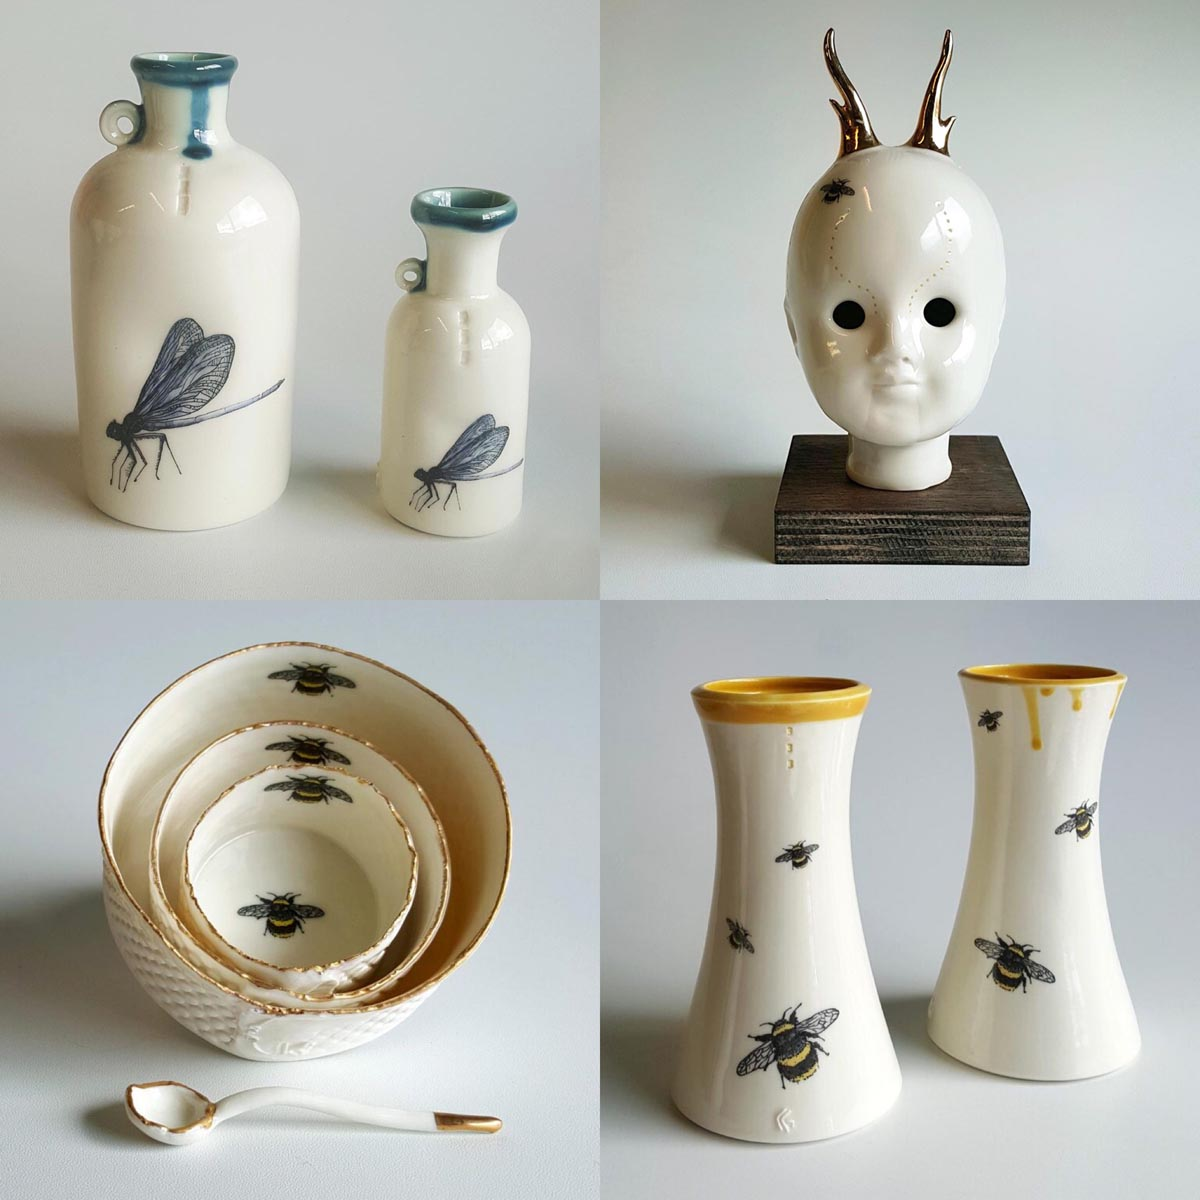 Range of hand made Irish porcelain homeware by Red Earth Designs - photo 1345